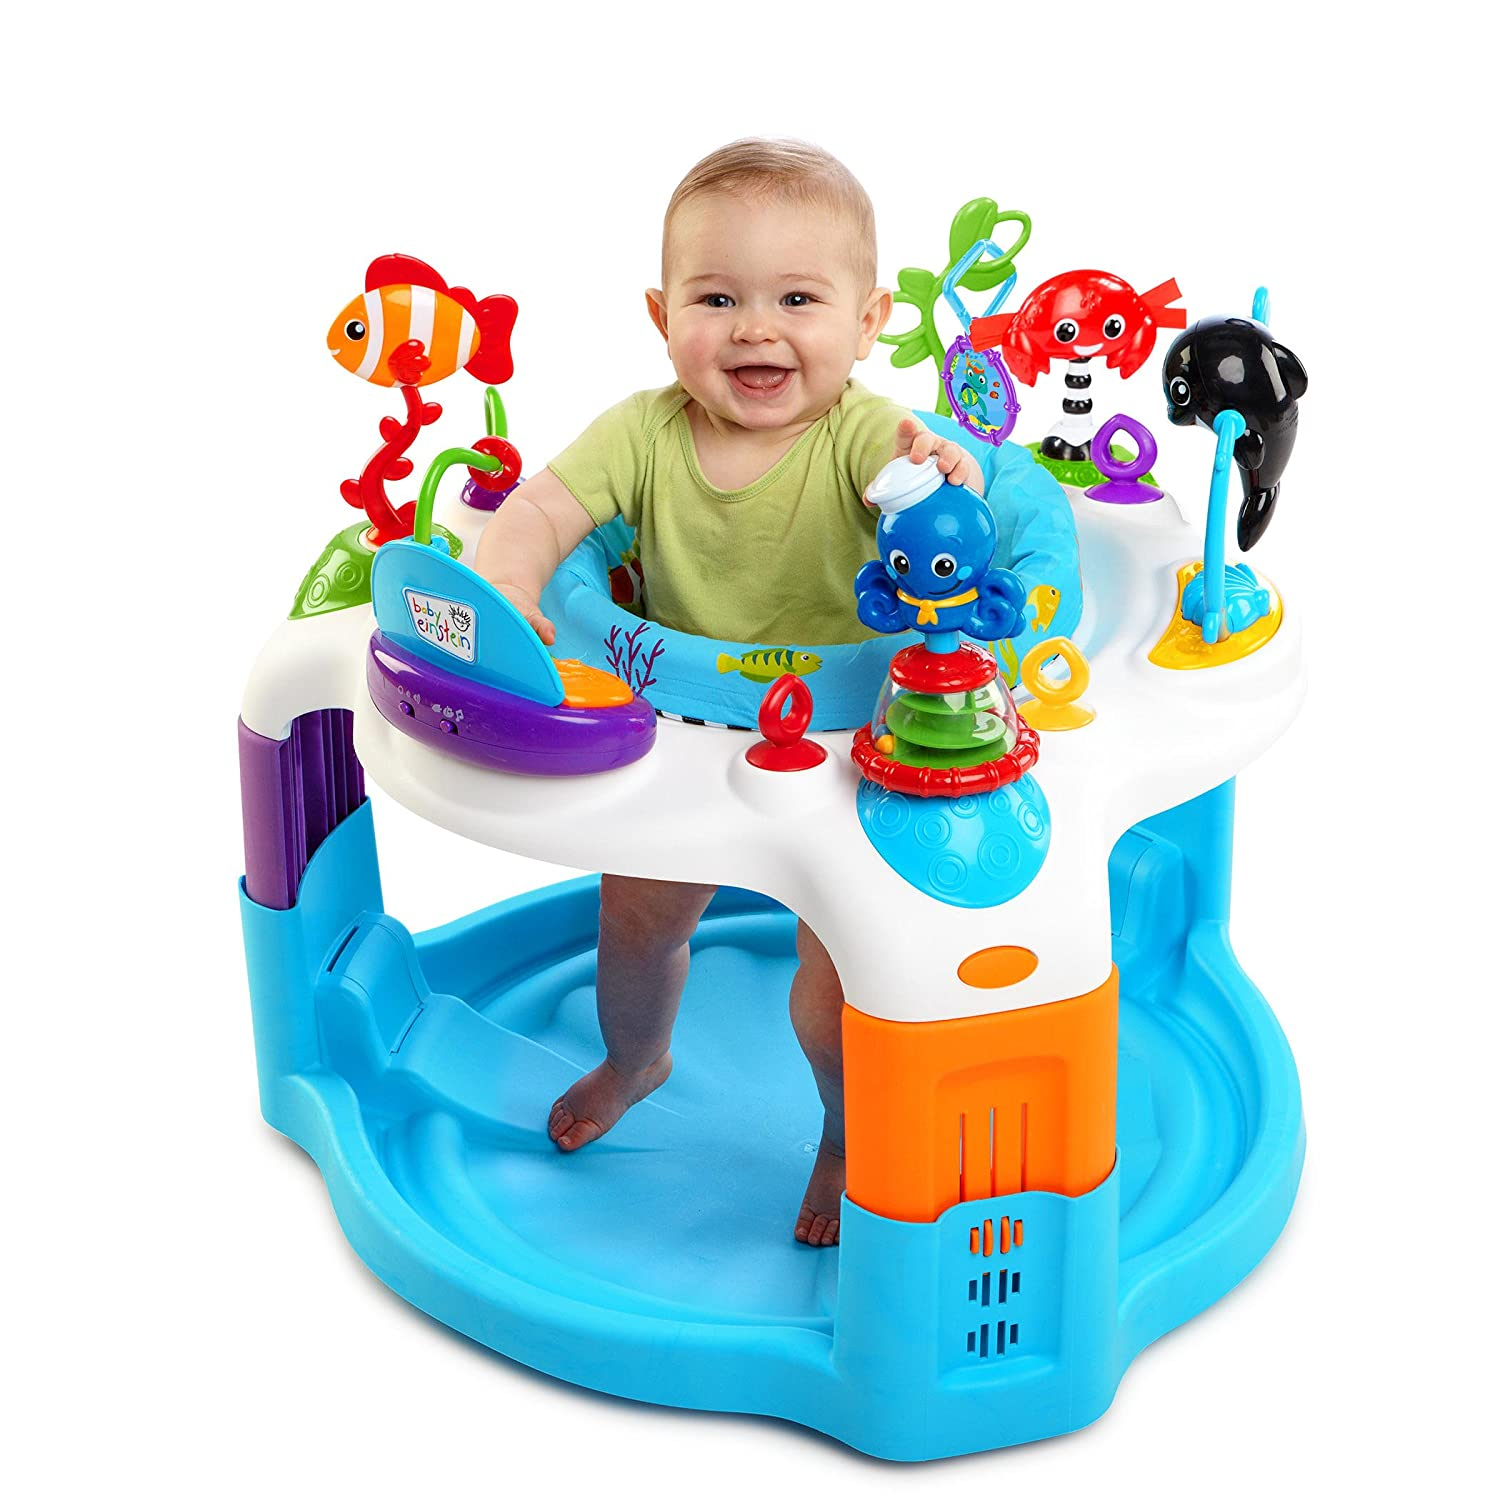 db1350471 Amazon.com   Baby Einstein Rhythm of The Reef Activity Saucer   Baby